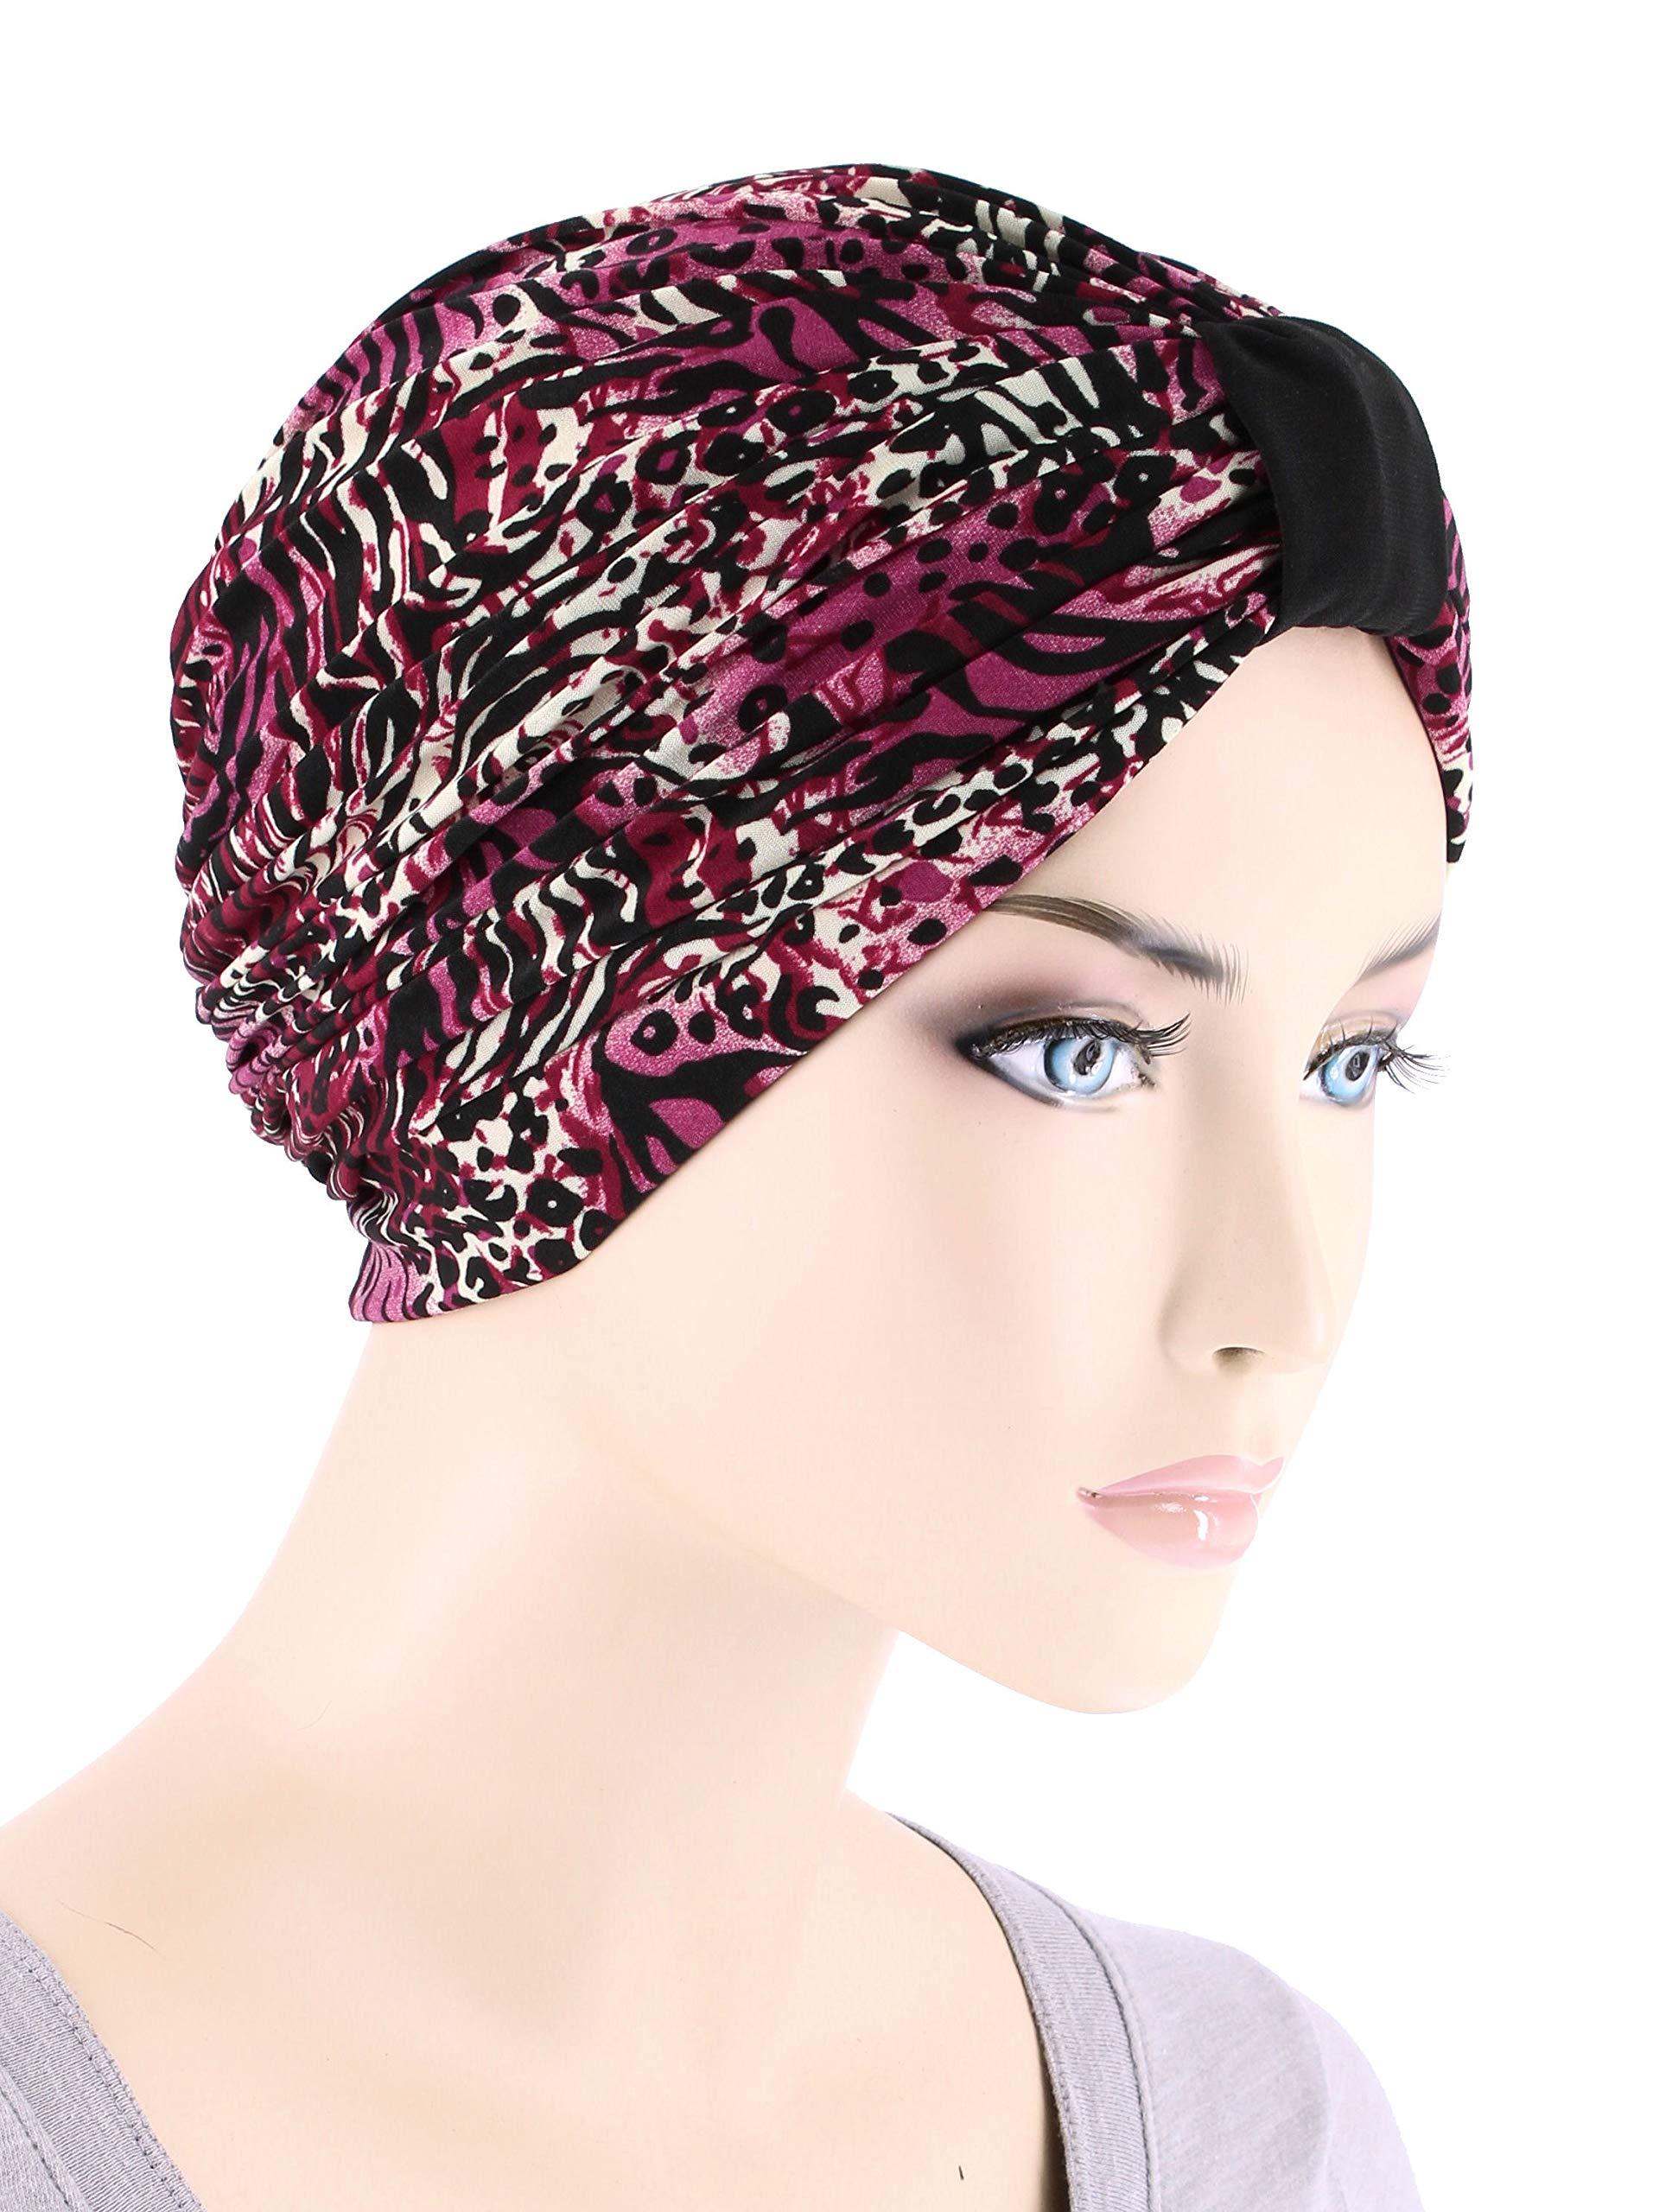 Elegant Print Turbans Soft Stretchy Pleated Chemo Cap for Women with Cancer in Animal Wild Berry